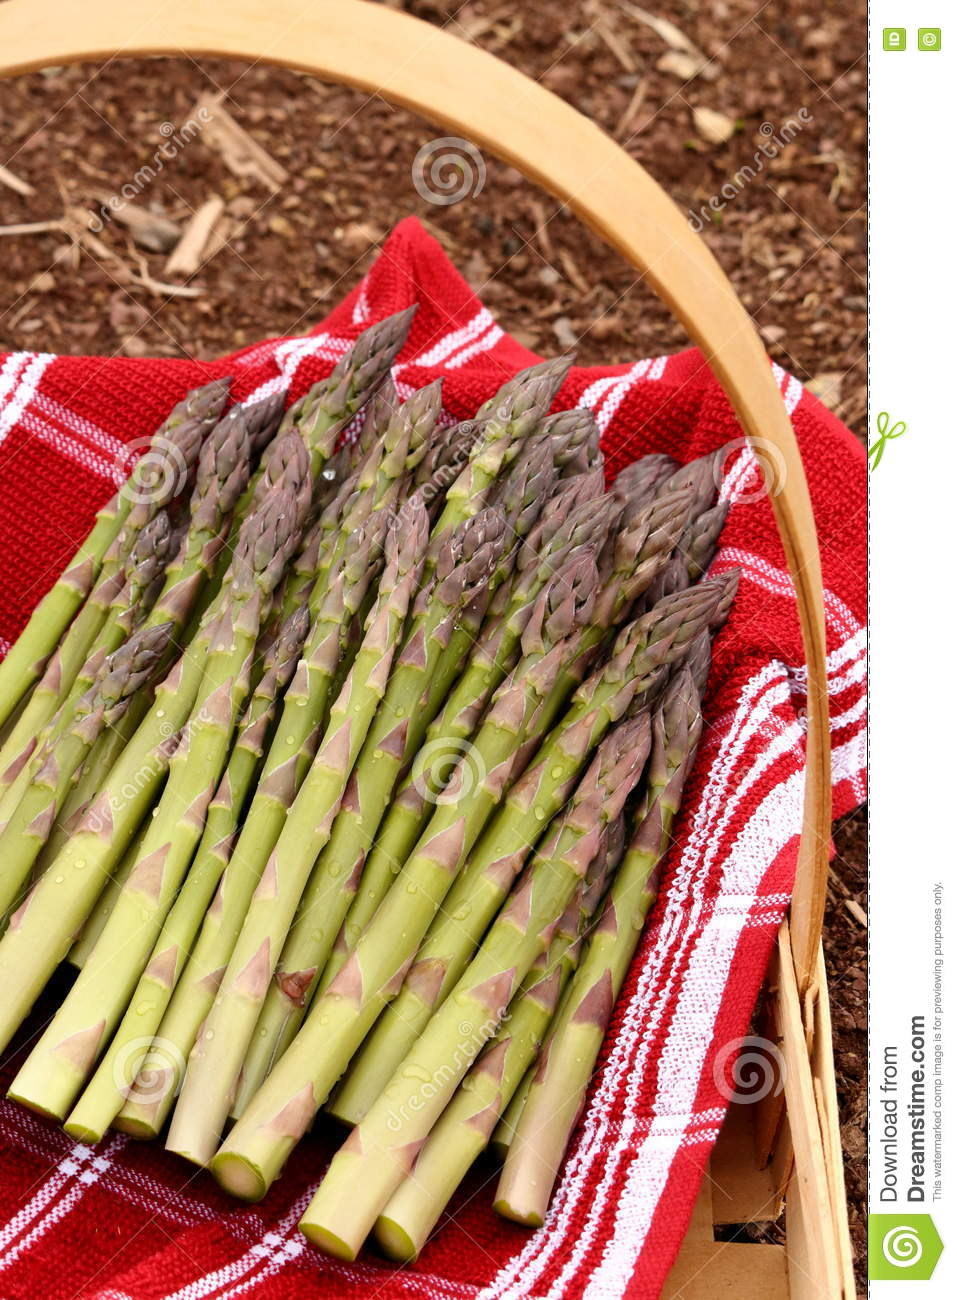 Fresh cut asparagus spears rest in a red and white lined basket that is setting in the garden.